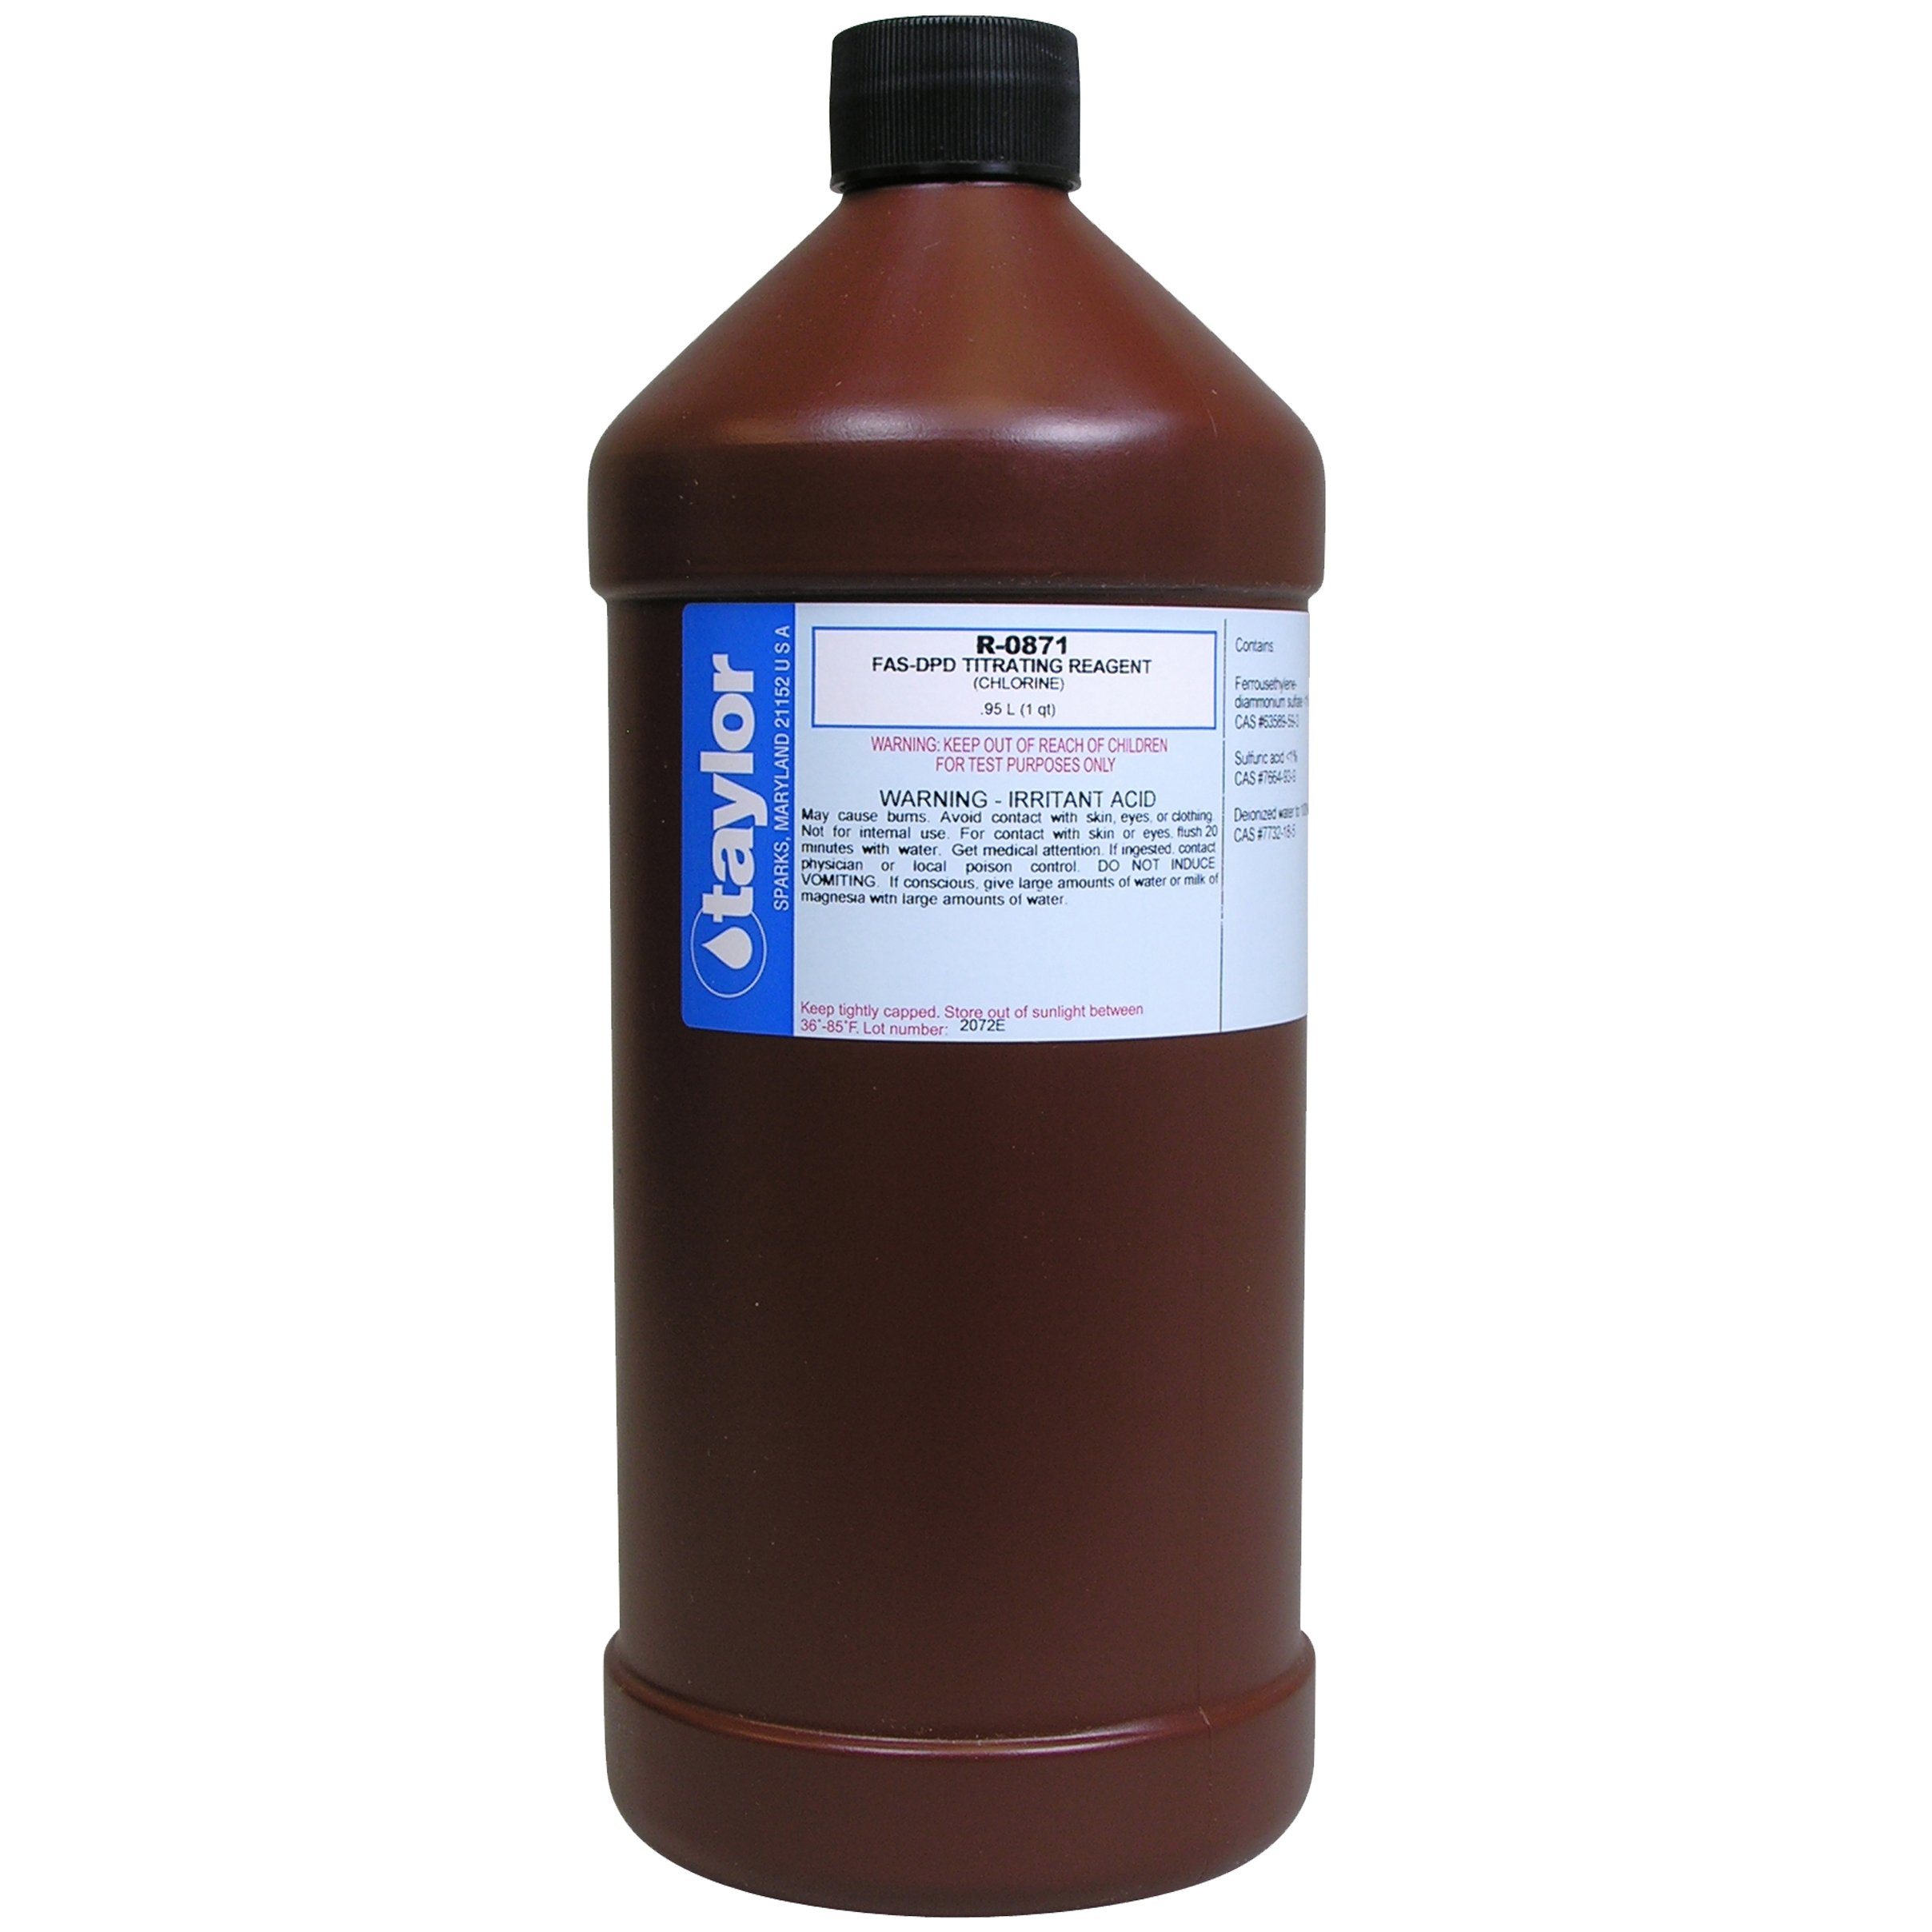 Taylor R0871-F Replacement Pool Reagents FAS-DPD Titrating Reagent - 1 Quart. by Taylor